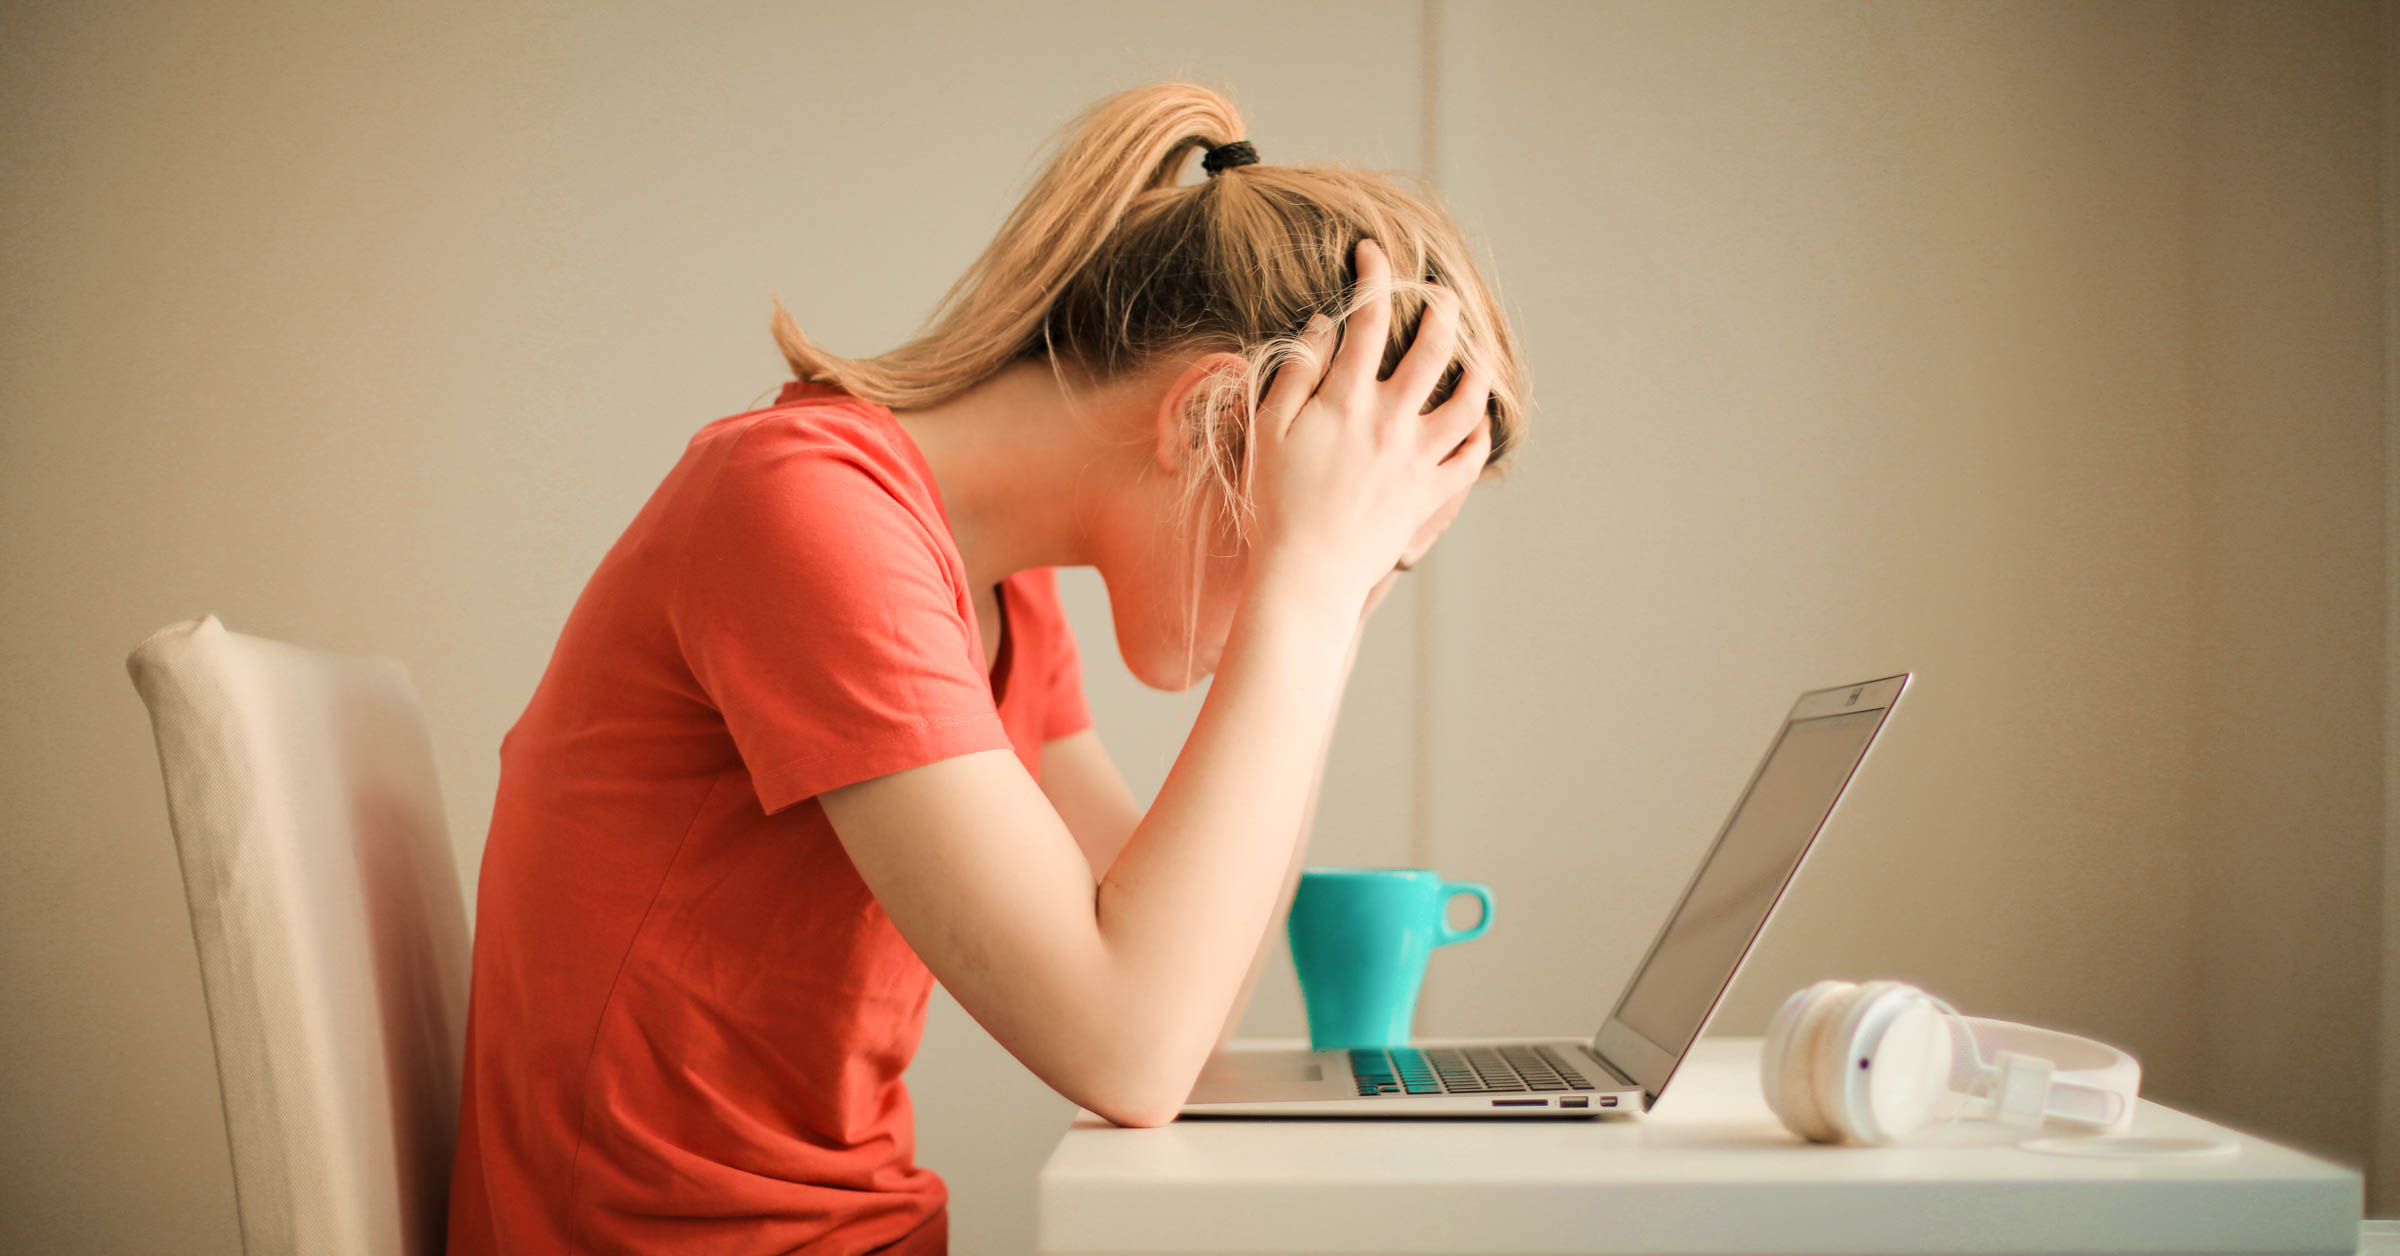 stressed out young woman looking at laptop